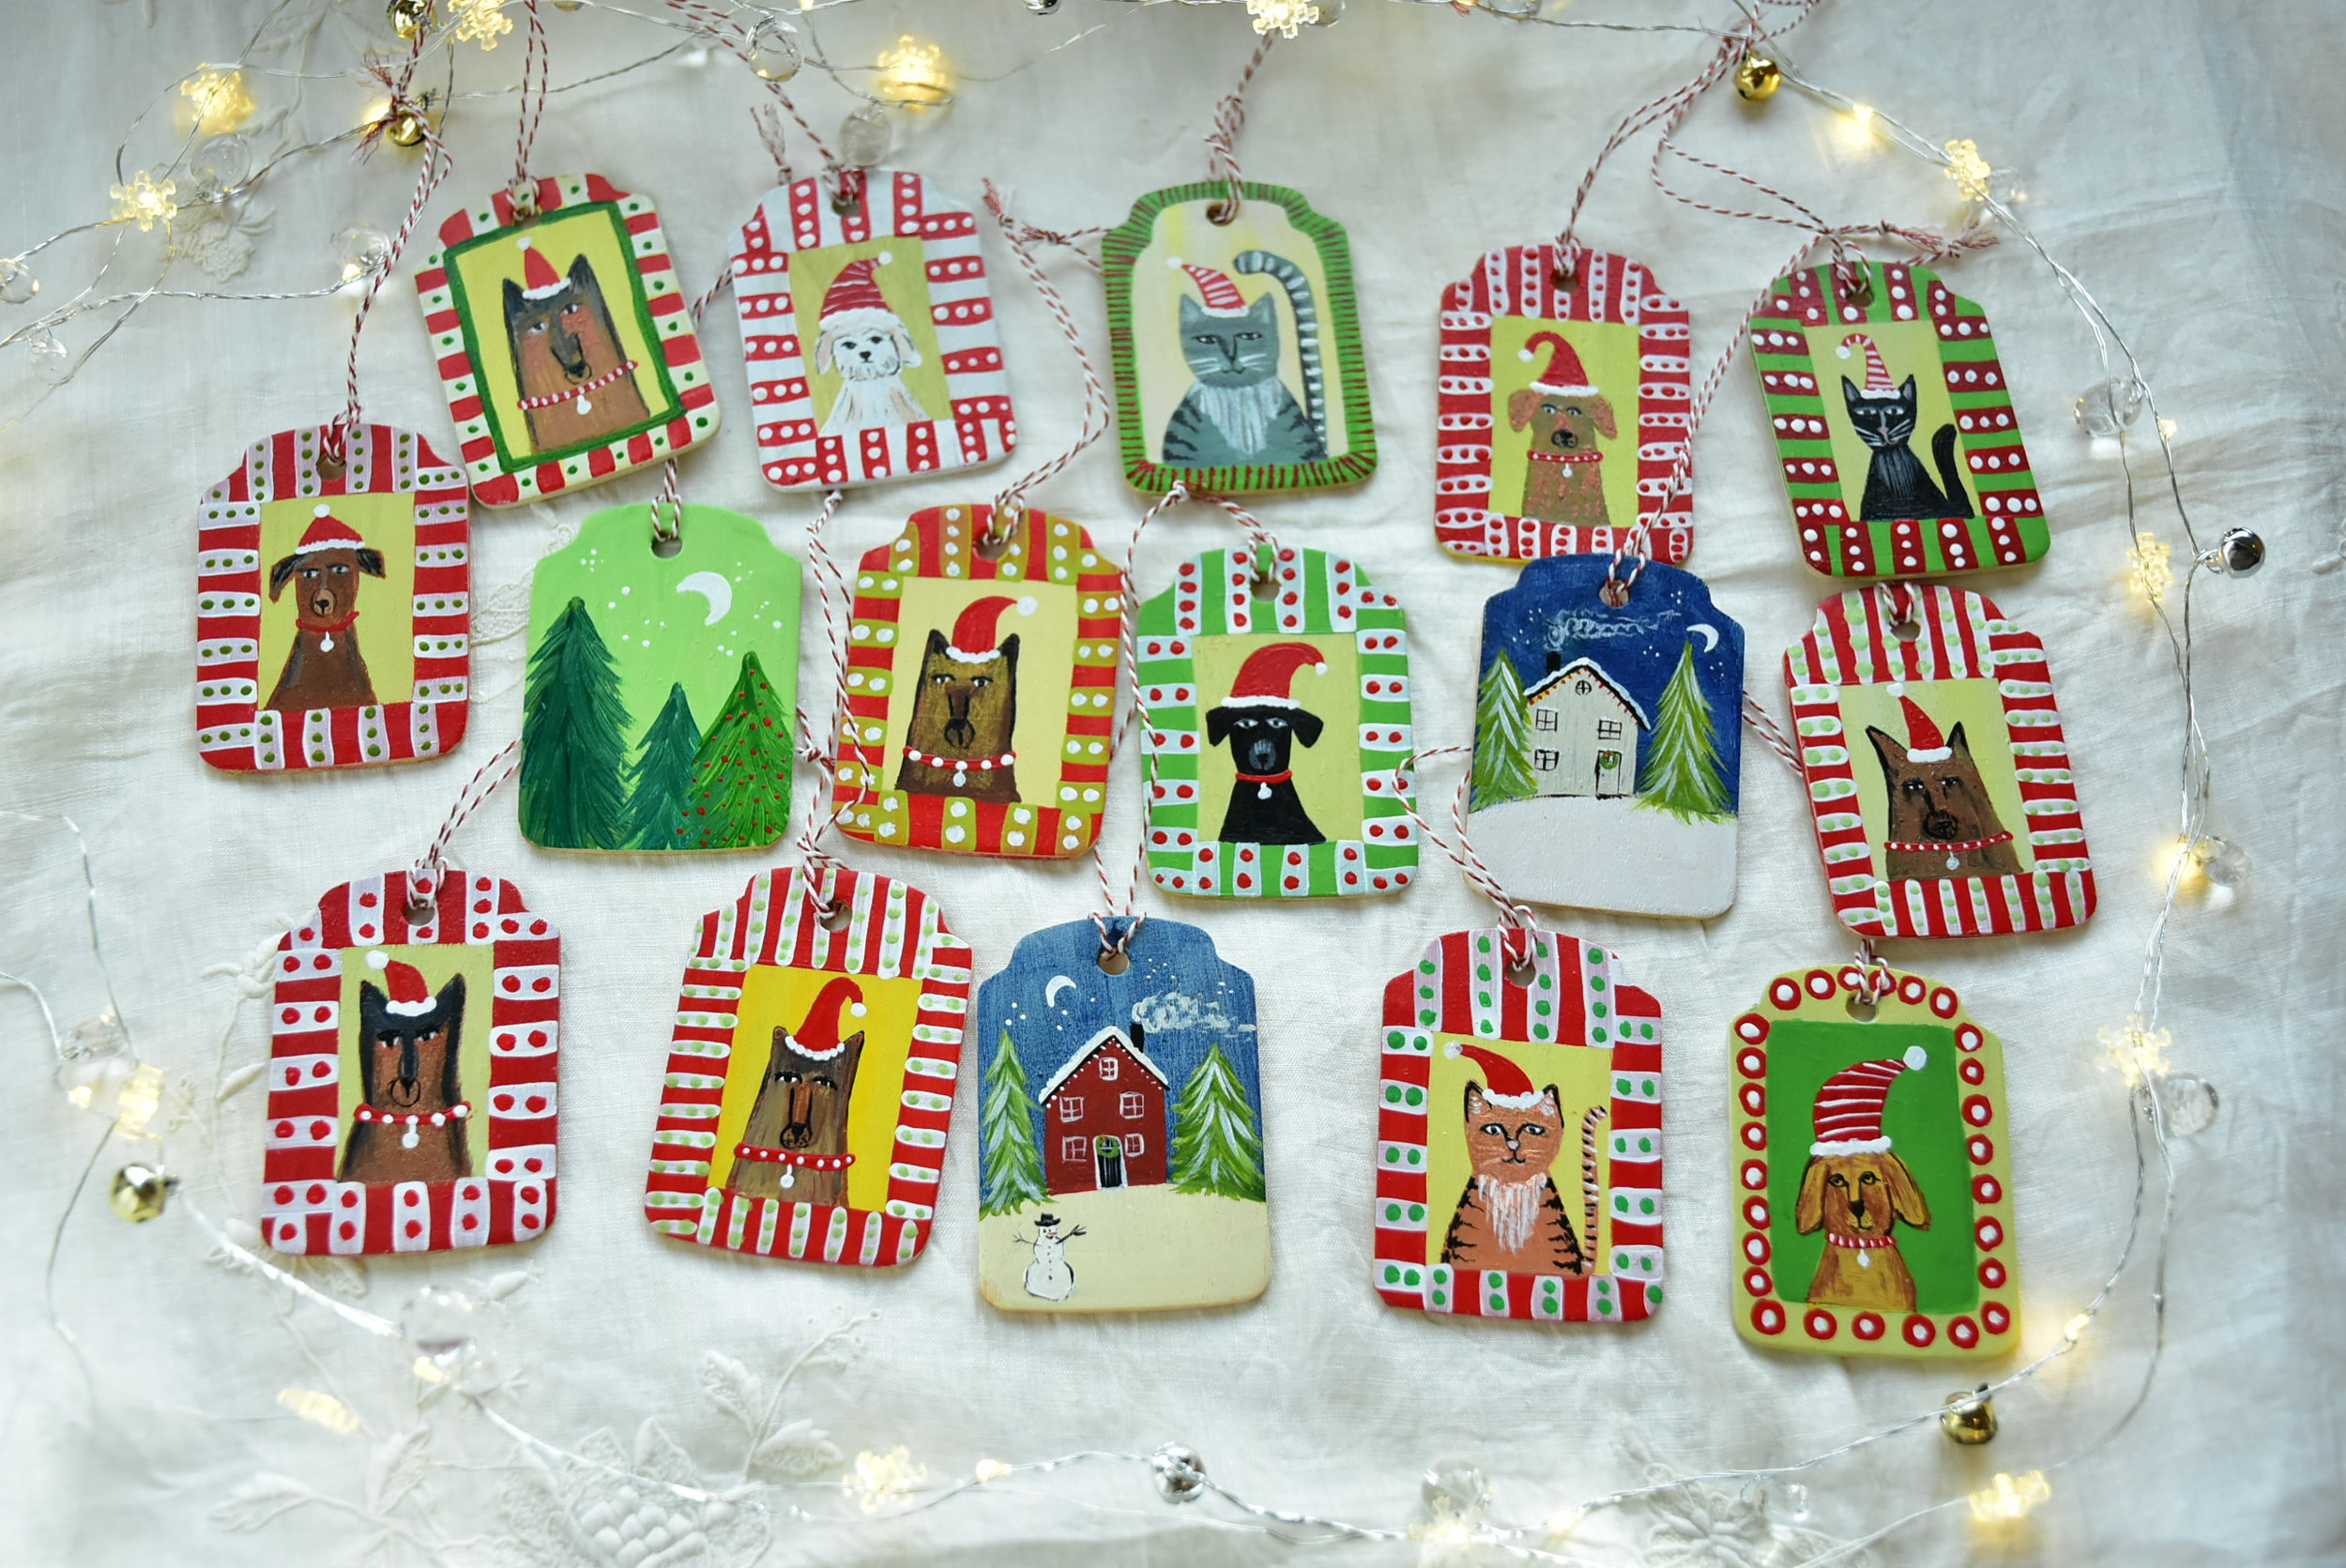 2018 Painted Ornaments (4).JPG